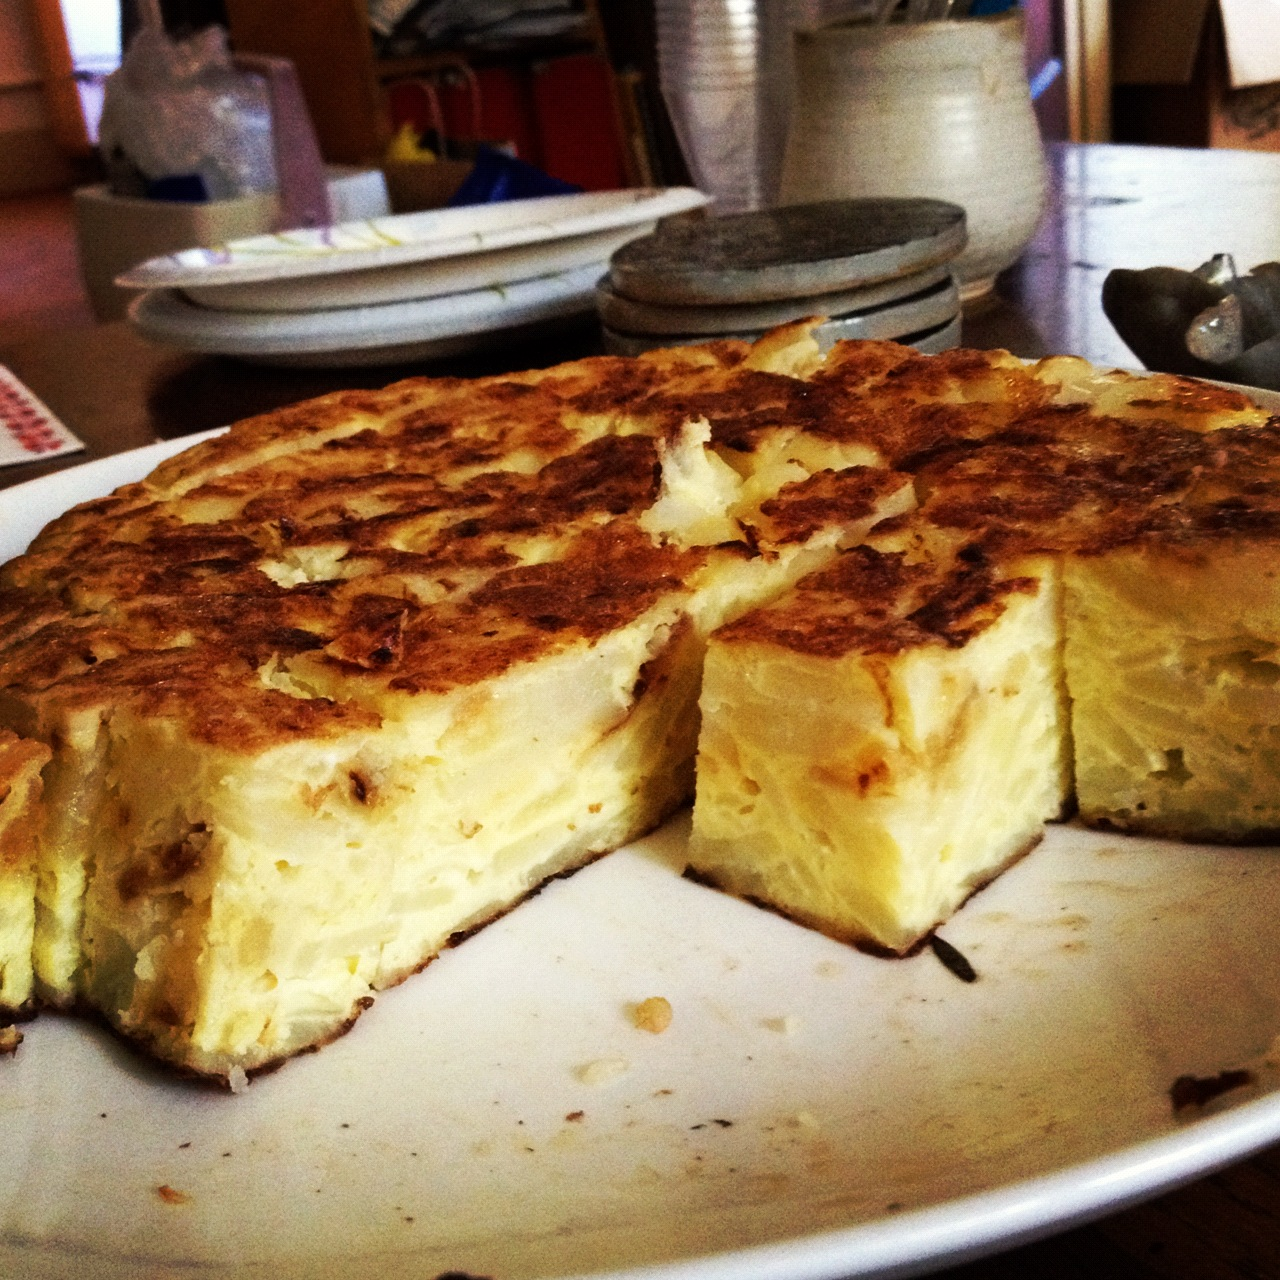 My rendition of Tortilla Espanola (Spanish Tortilla ) doesn't look too bad